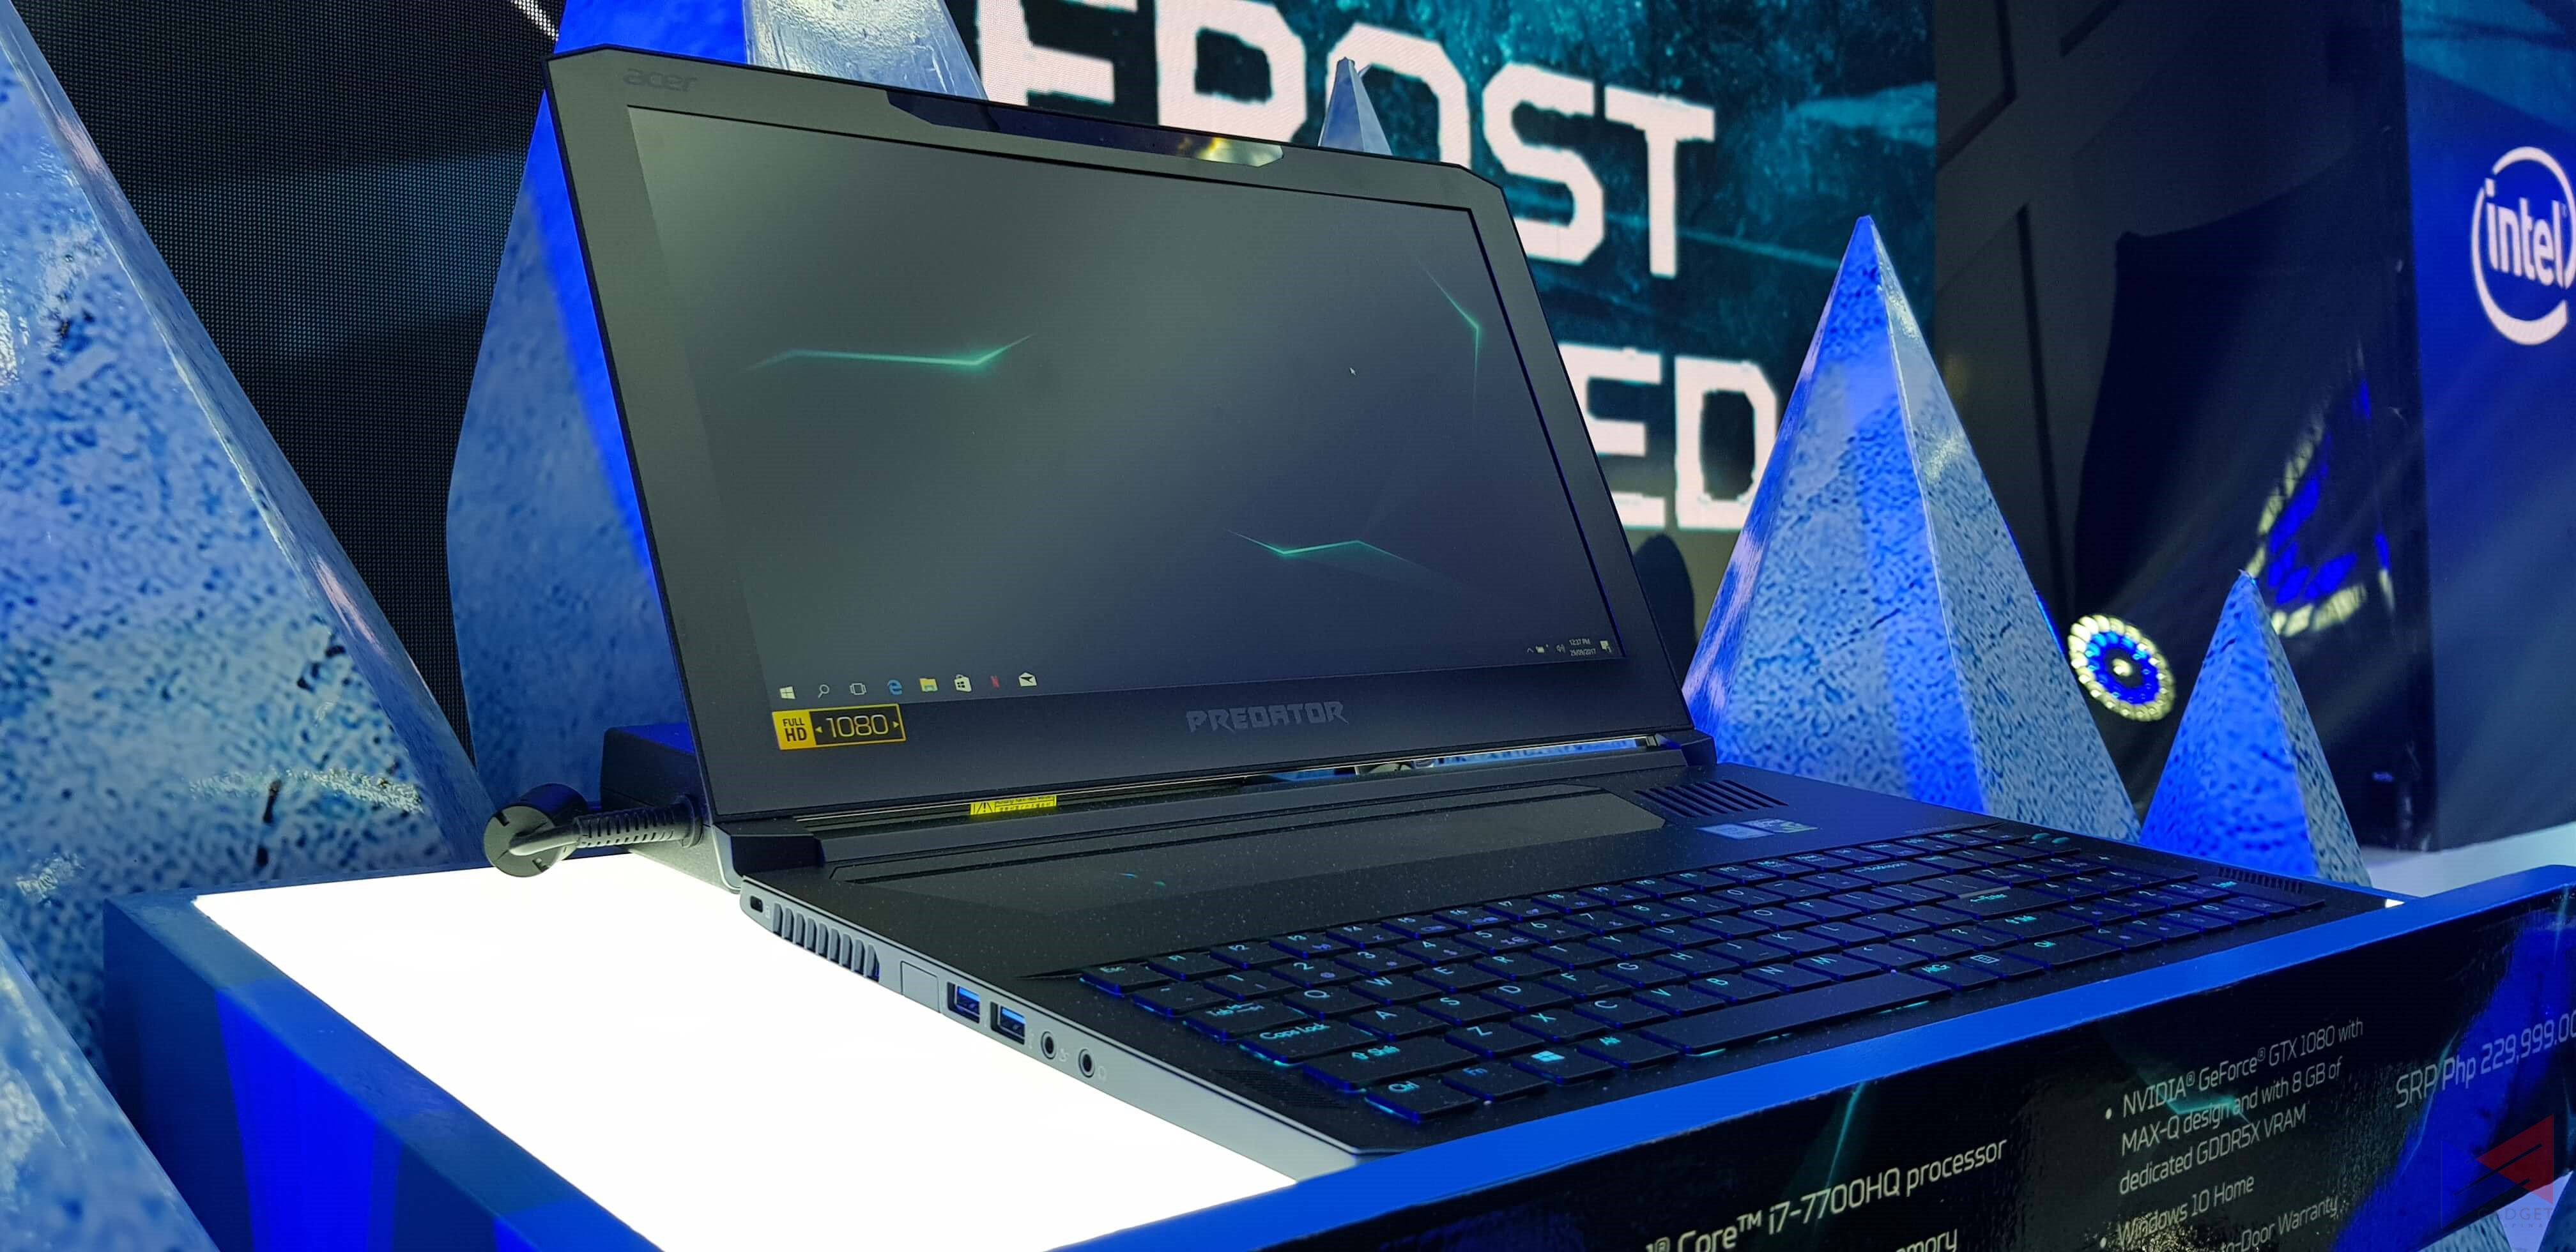 triton700 7 wm - Acer Launches Predator Triton 700 Gaming Laptop in PH